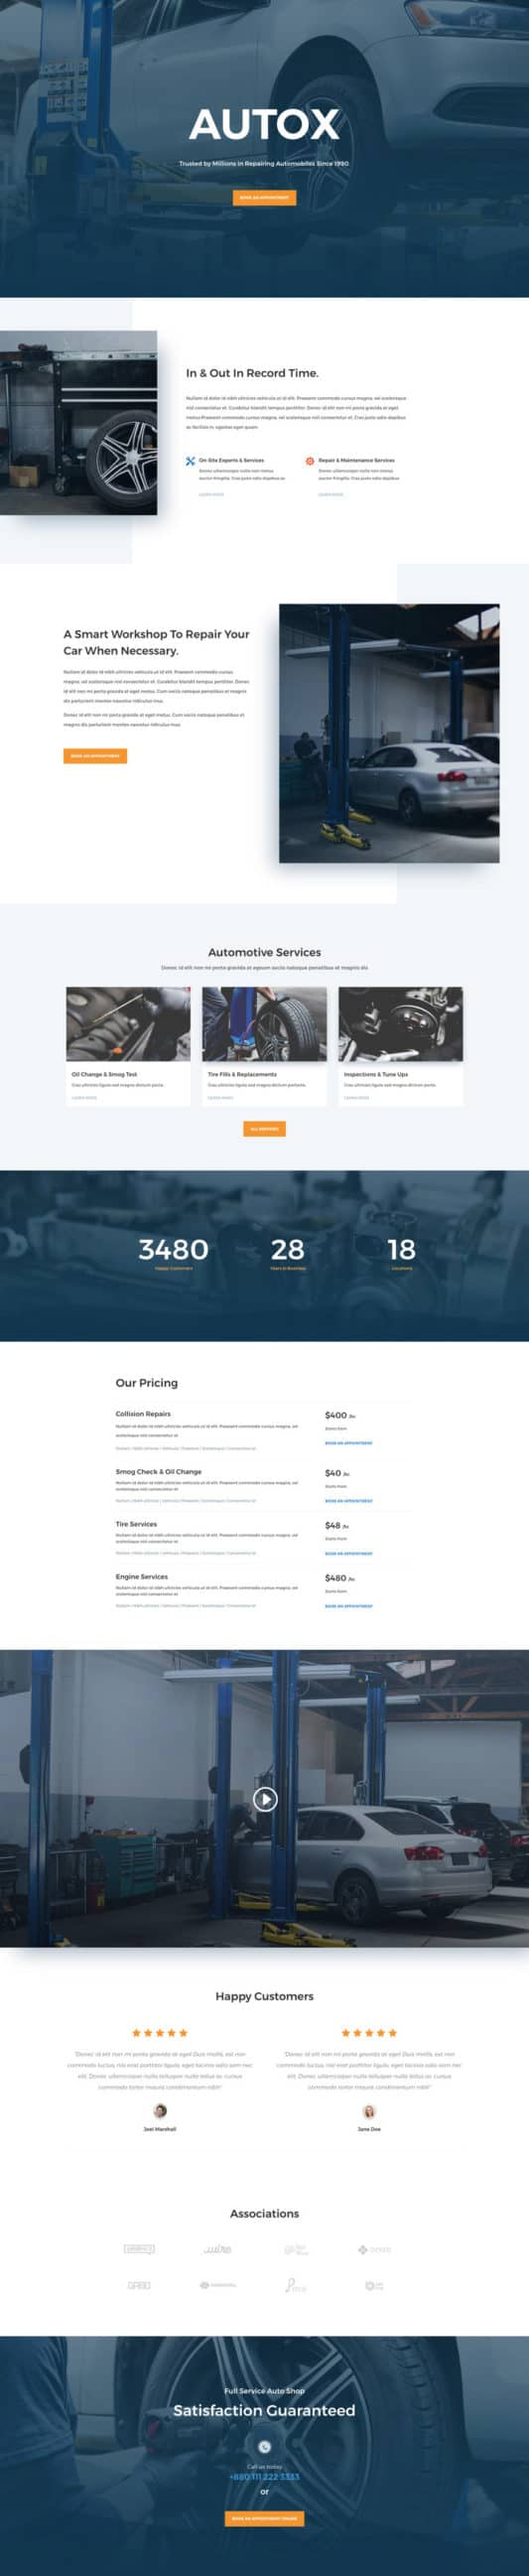 Auto Repair Web Design 5